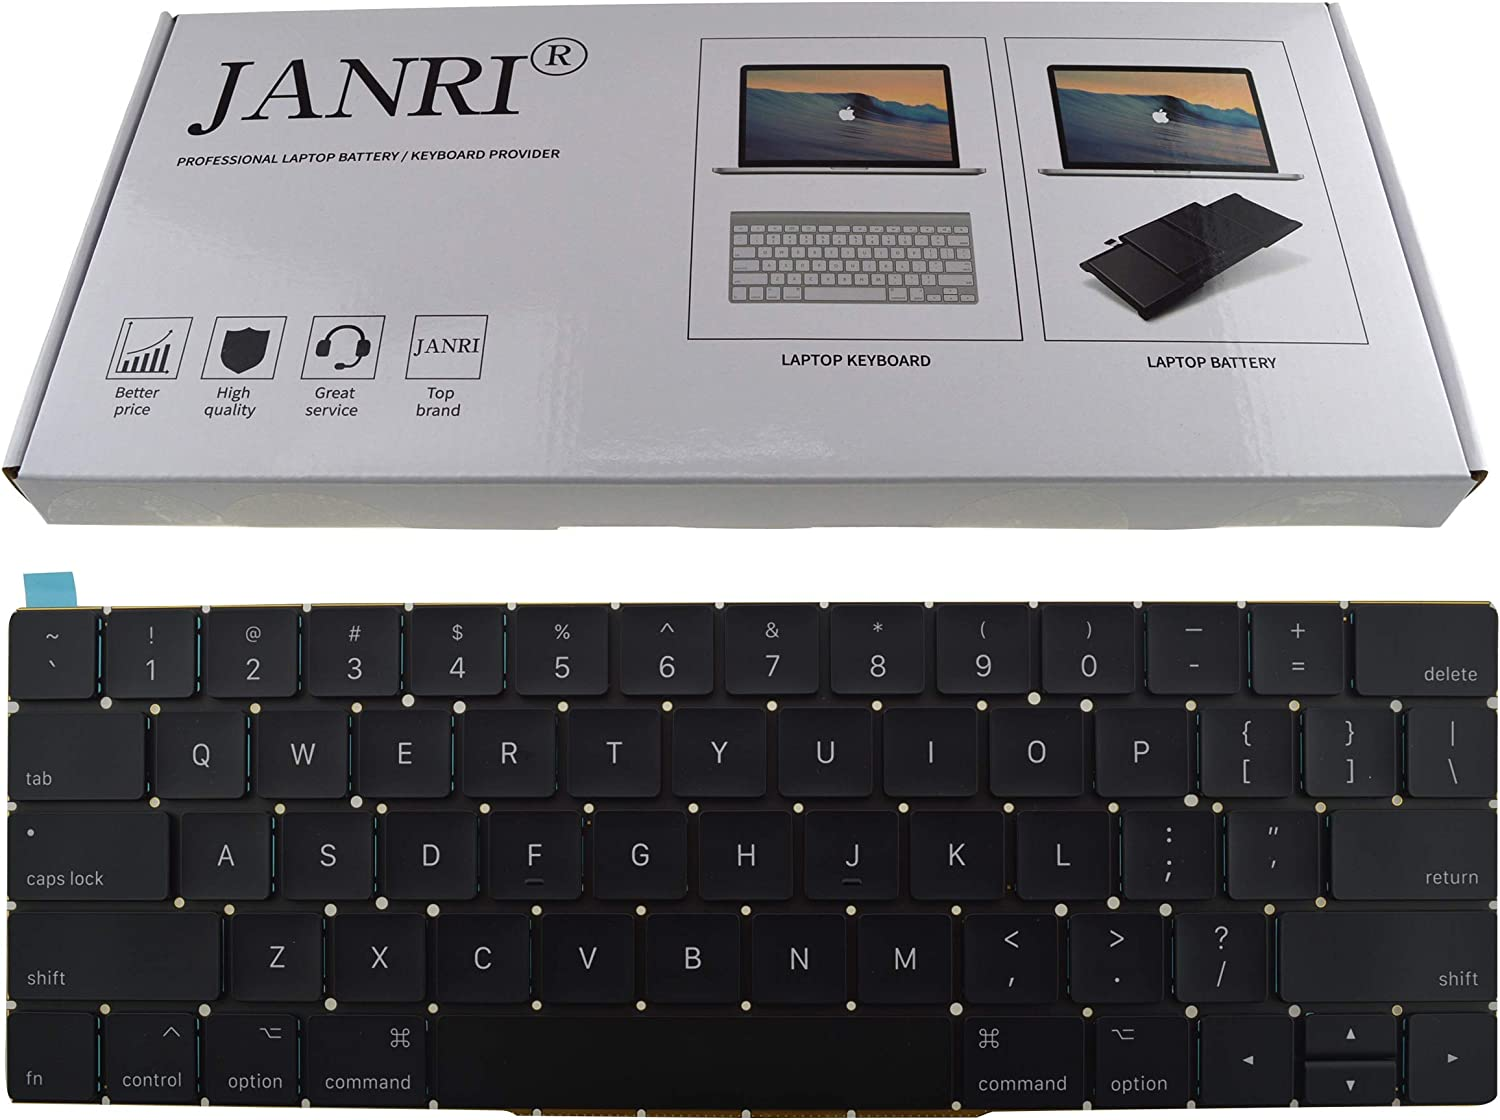 JANRI Replacement US Keyboard for MacBook Pro 13 inch A1708 Without touchpad bar MacBookPro14,1 MacBookPro13,1 A1708 Late 2016 mid 2017